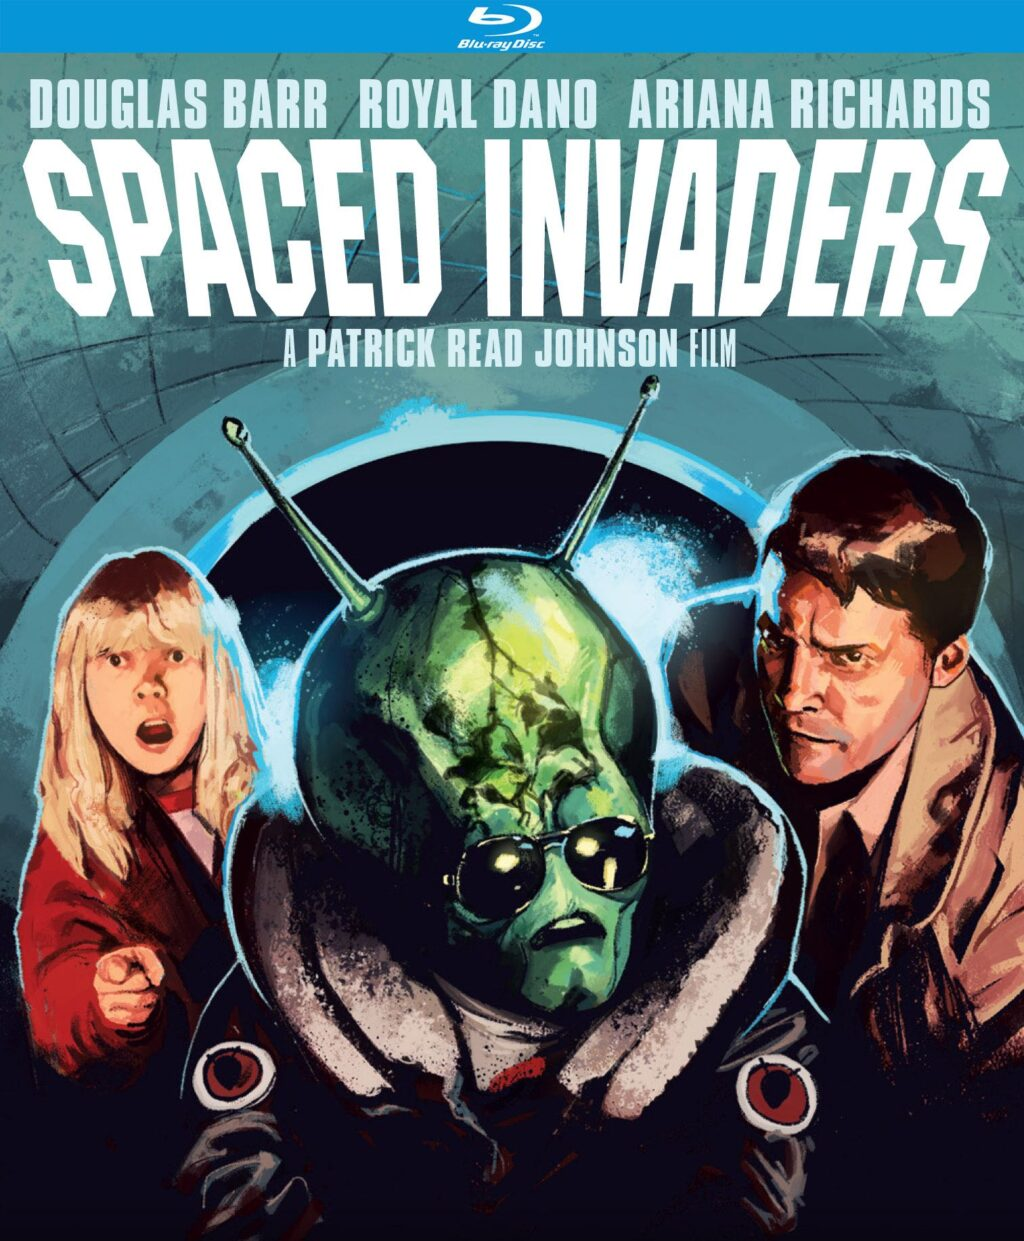 spaced invaders blu 1024x1241 - SPACED INVADERS Blu-ray Review - A Kinder War of the Worlds